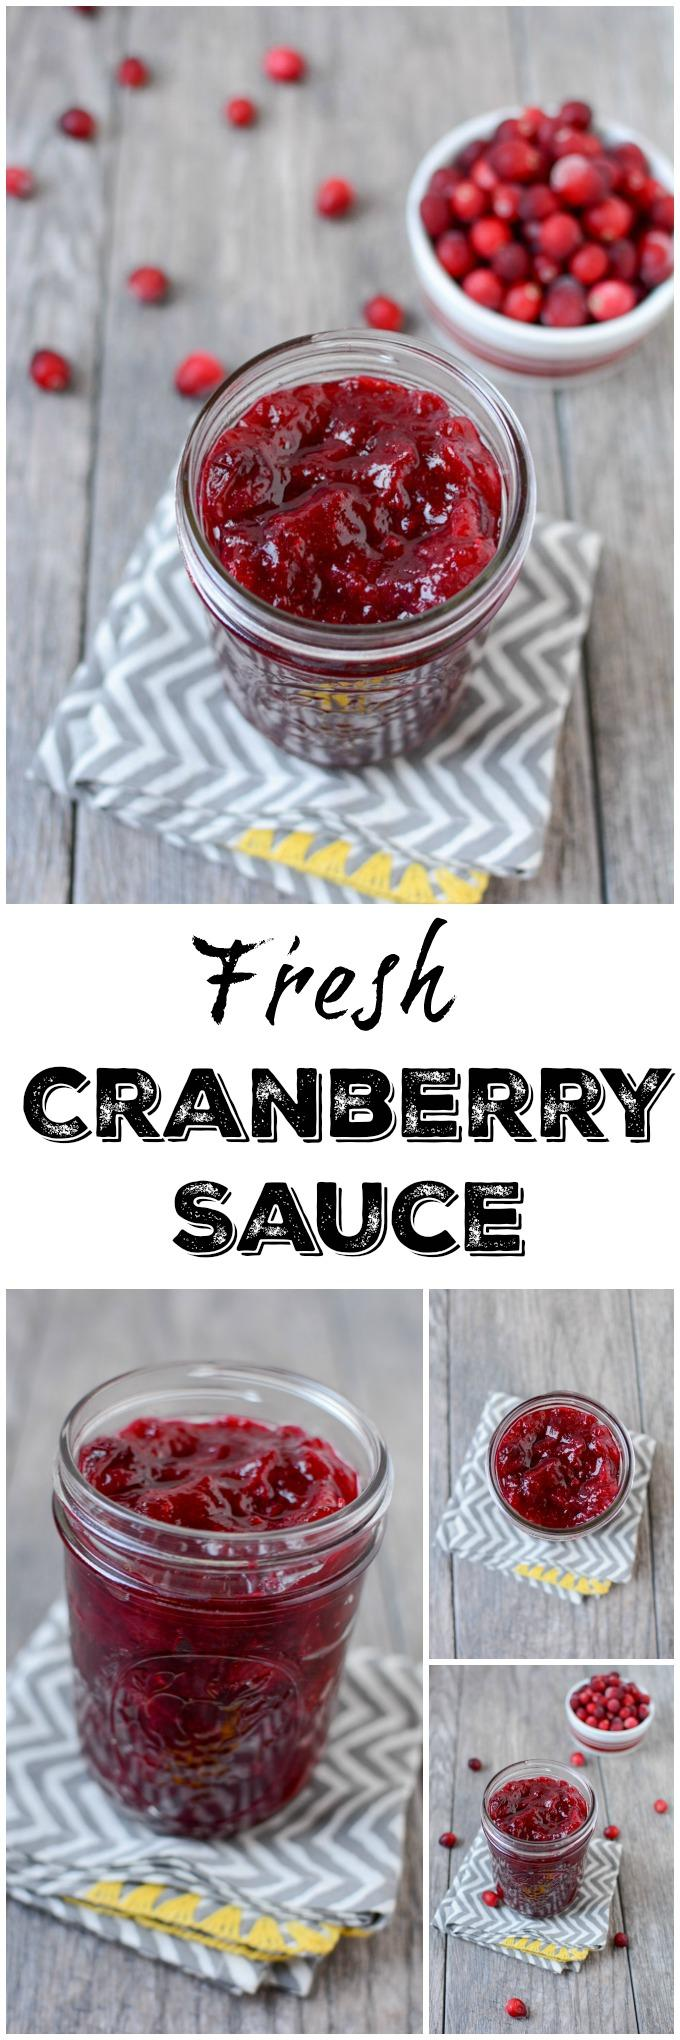 This Fresh Cranberry Sauce is simple to make, ready in 15 minutes and tastes great on everything from turkey to oatmeal! Make a batch and enjoy on your favorite breakfast, lunch, dinner and holiday recipes!